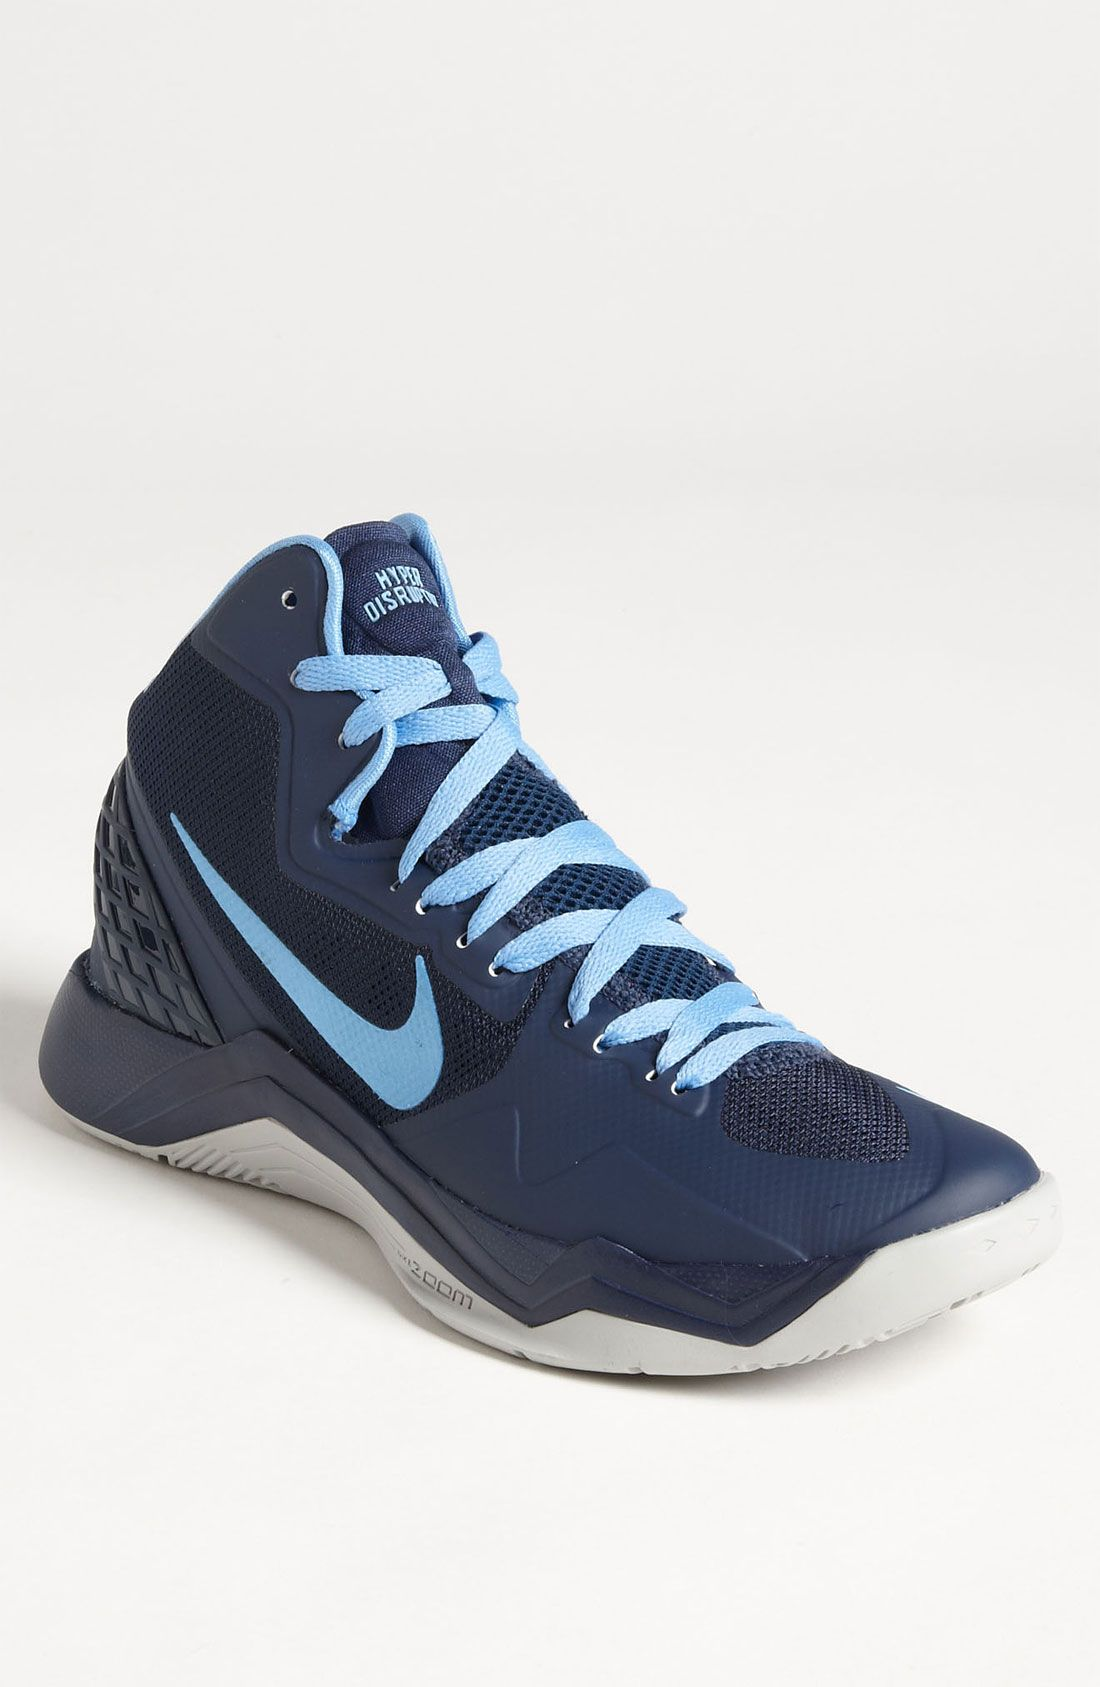 0efa1a8792664 Nike   Zoom HyperFranchise XD  Basketball Shoe For Men Synthetic upper and  lining rubber sole.     Be sure to check out this helpful article.